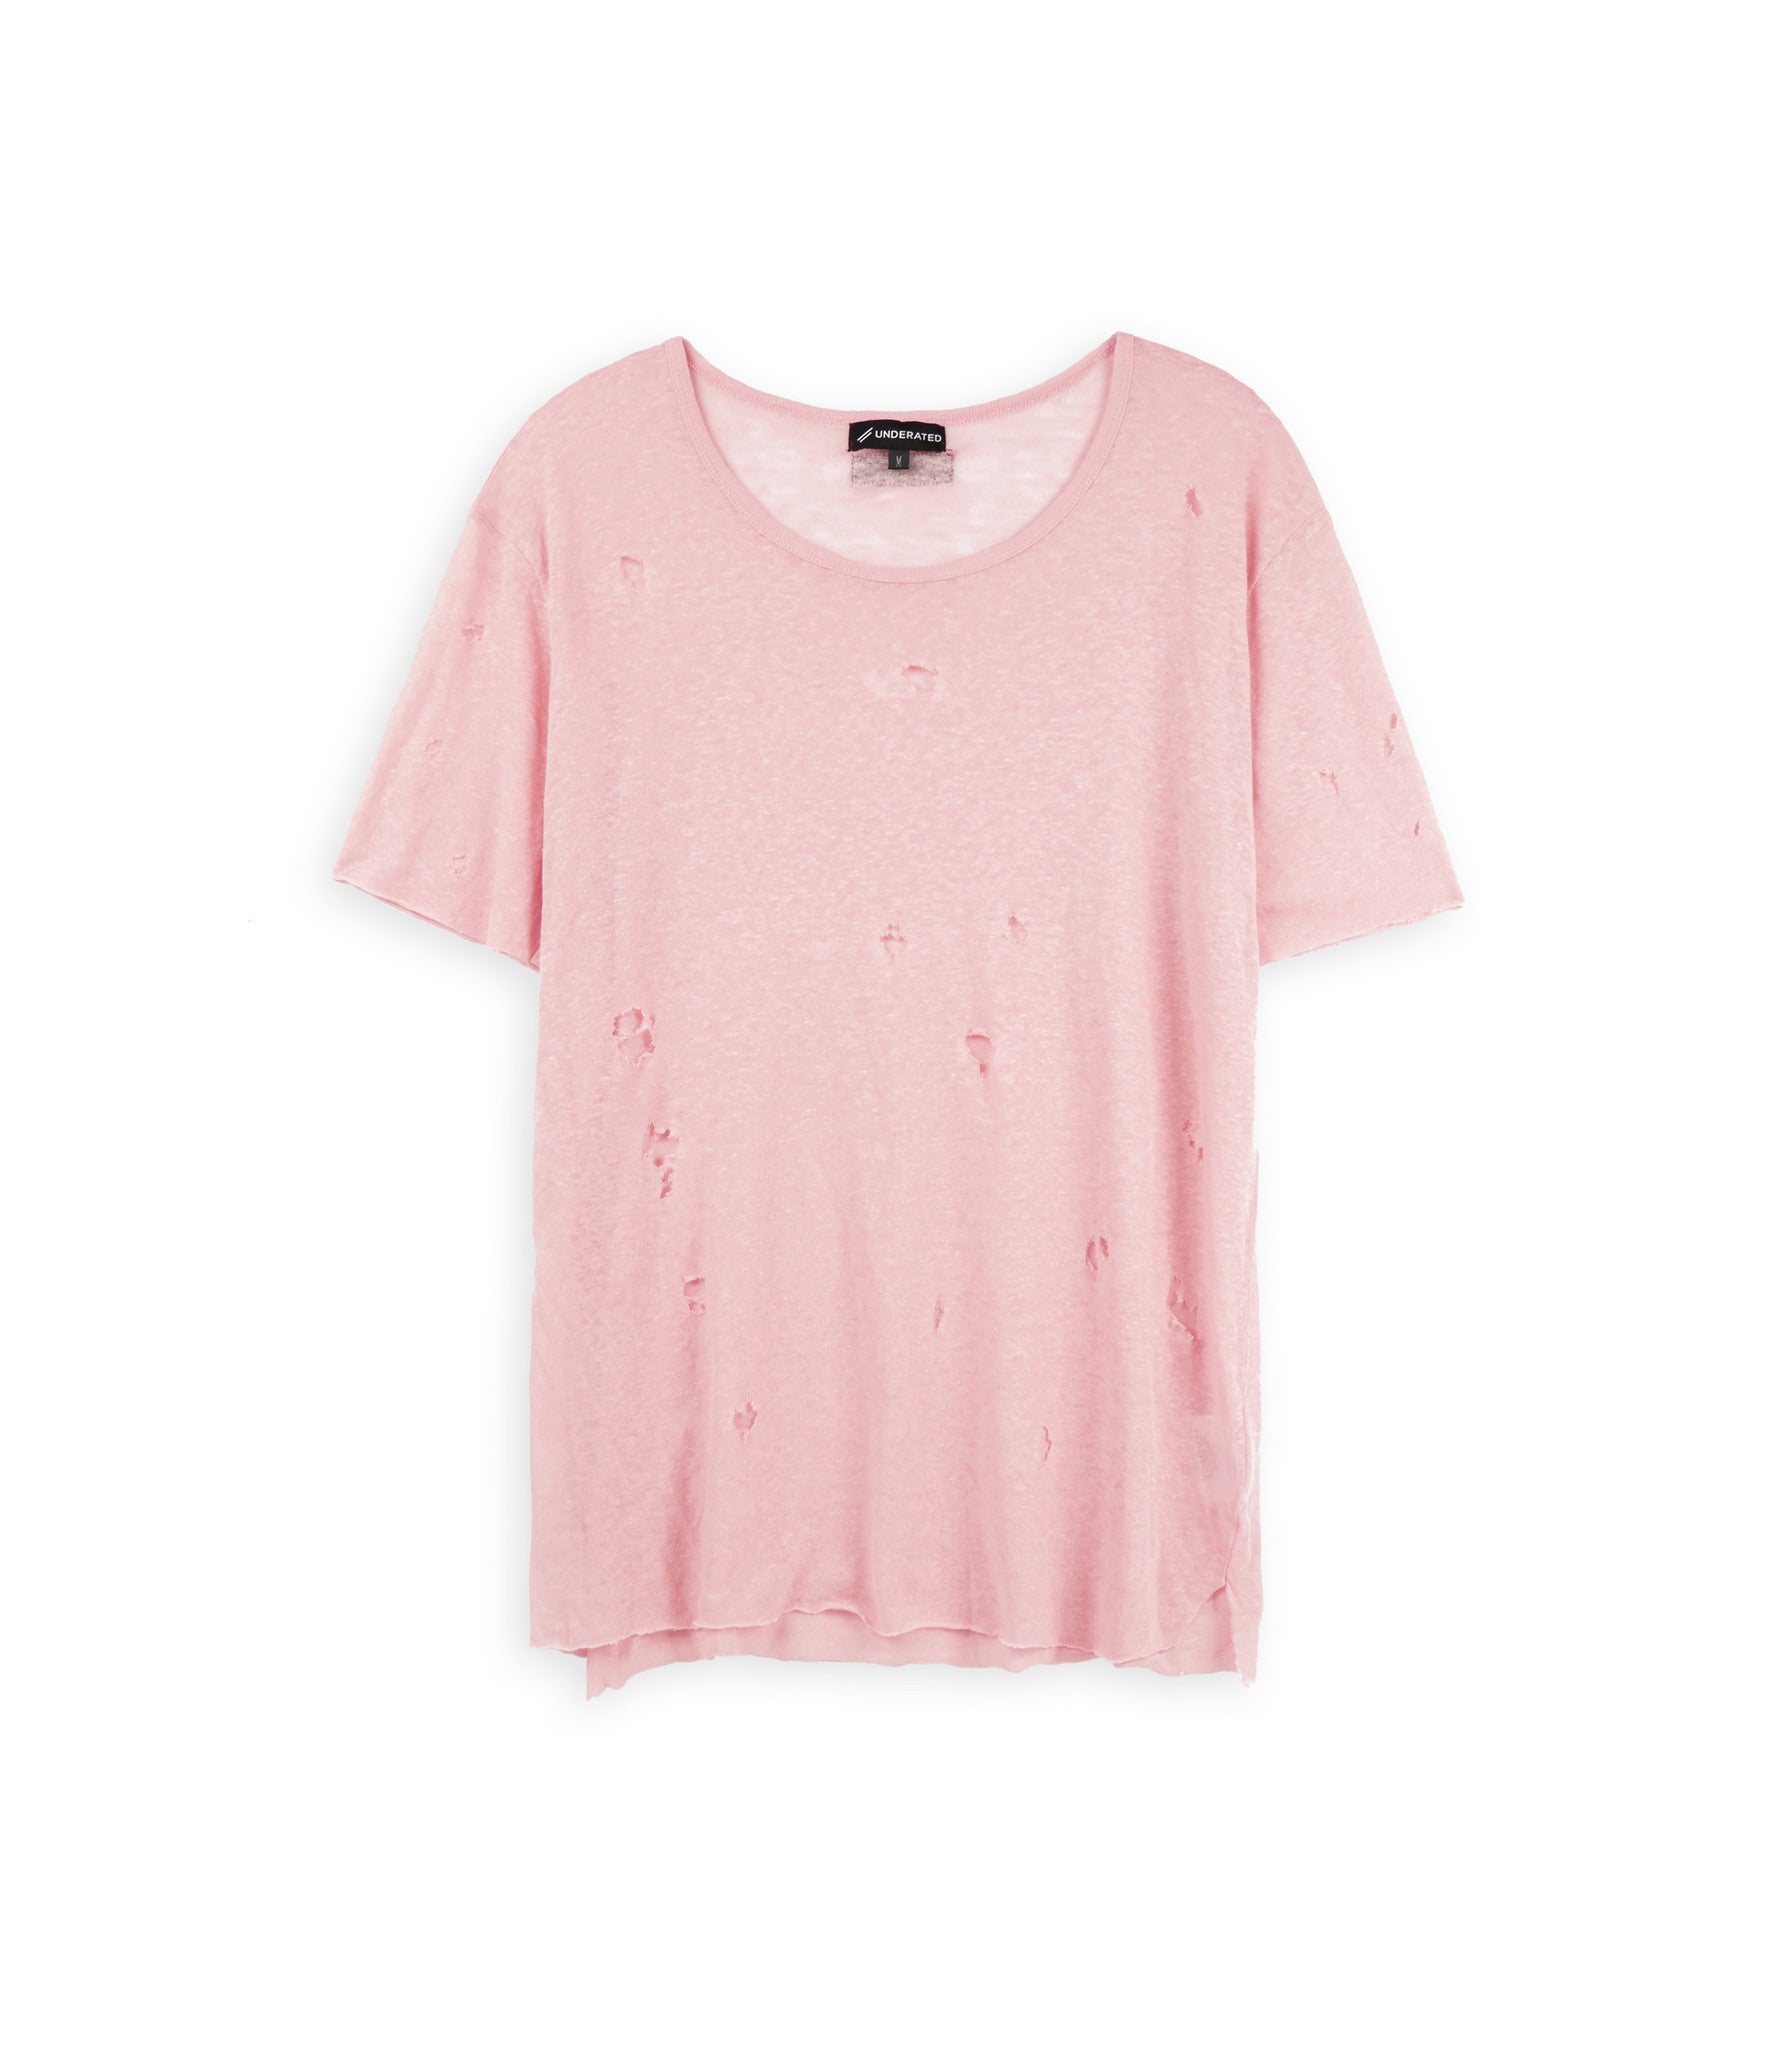 D10V2 Exile Distressed Tee - Pink - underated london - underatedco - 2